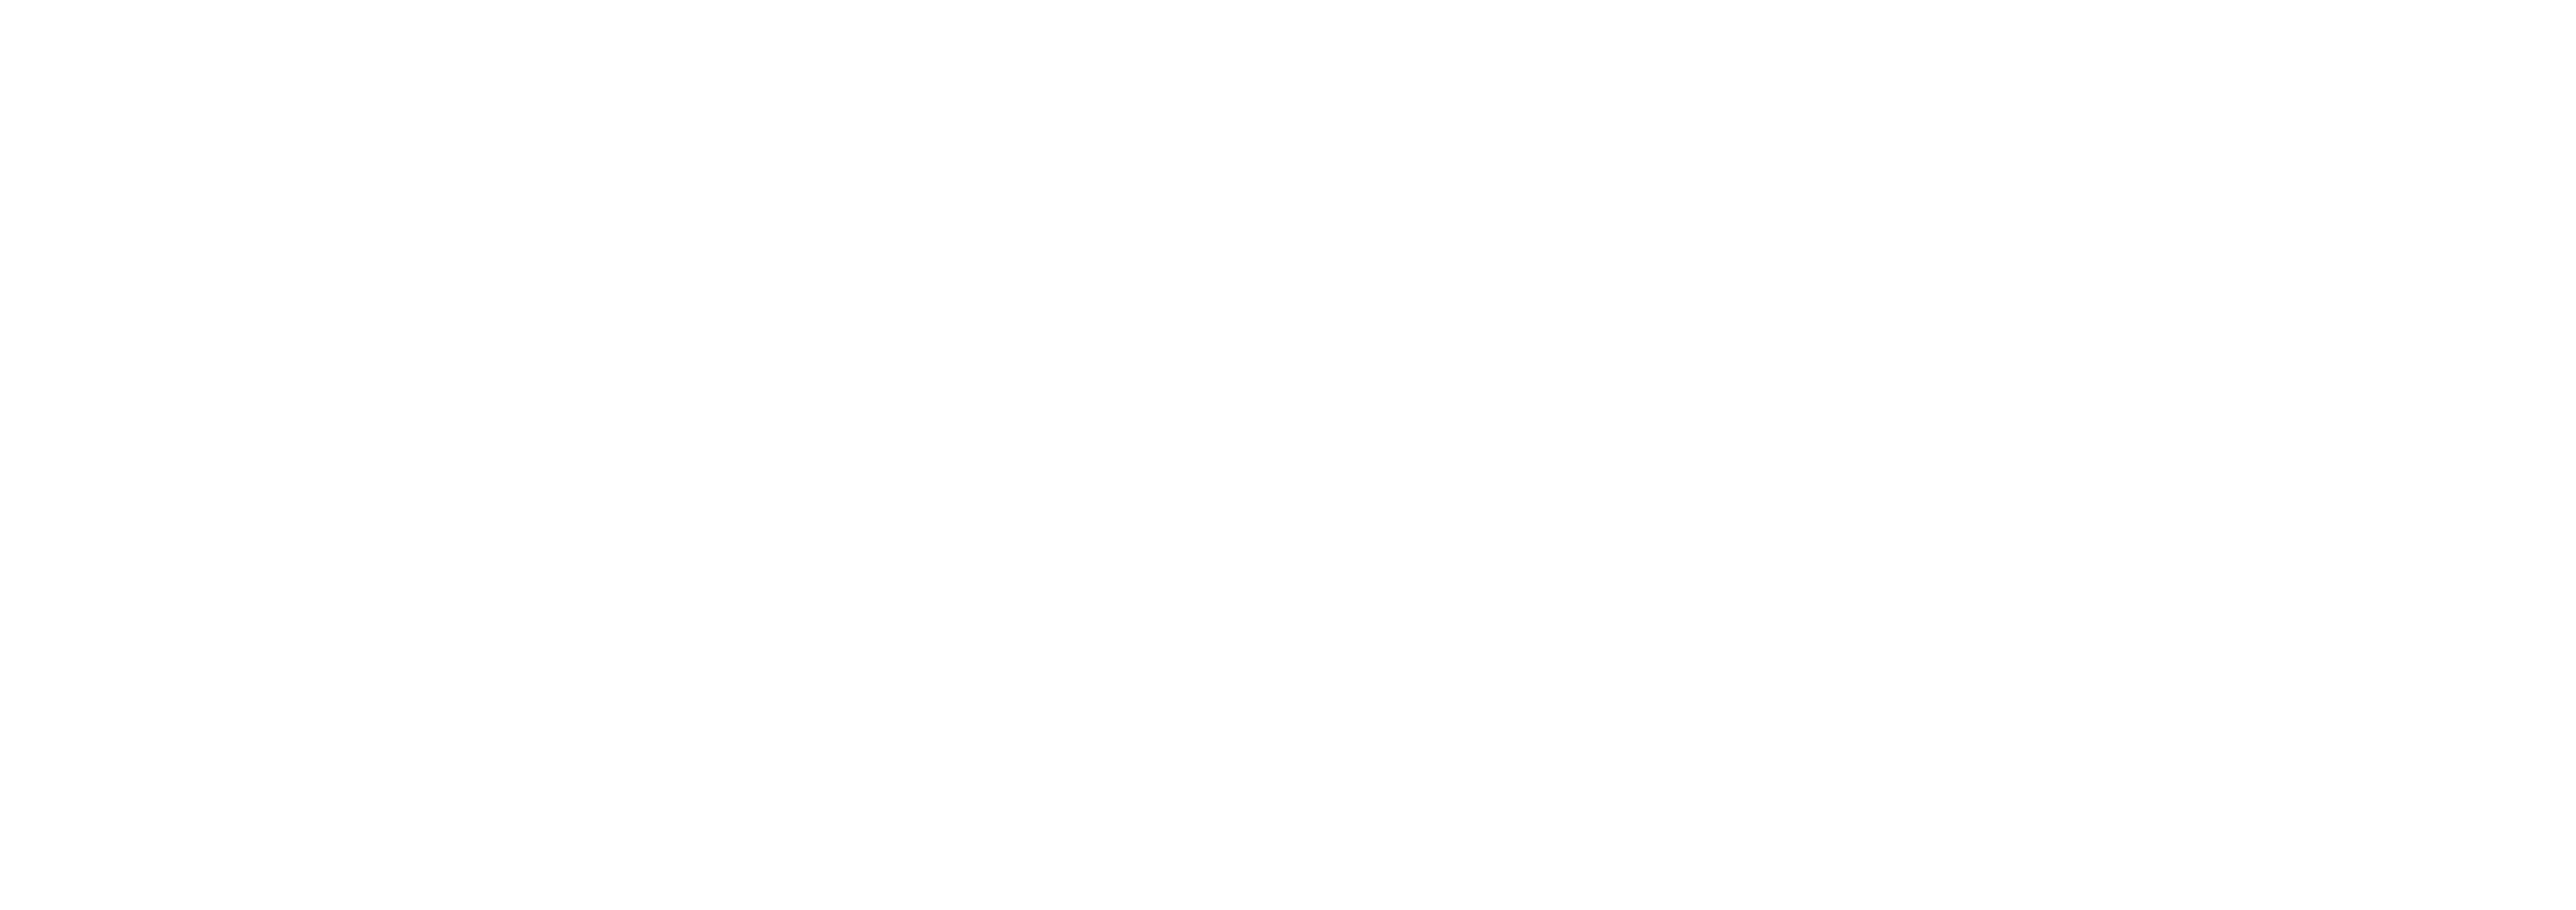 Customtronics Name and Logo-White-V2